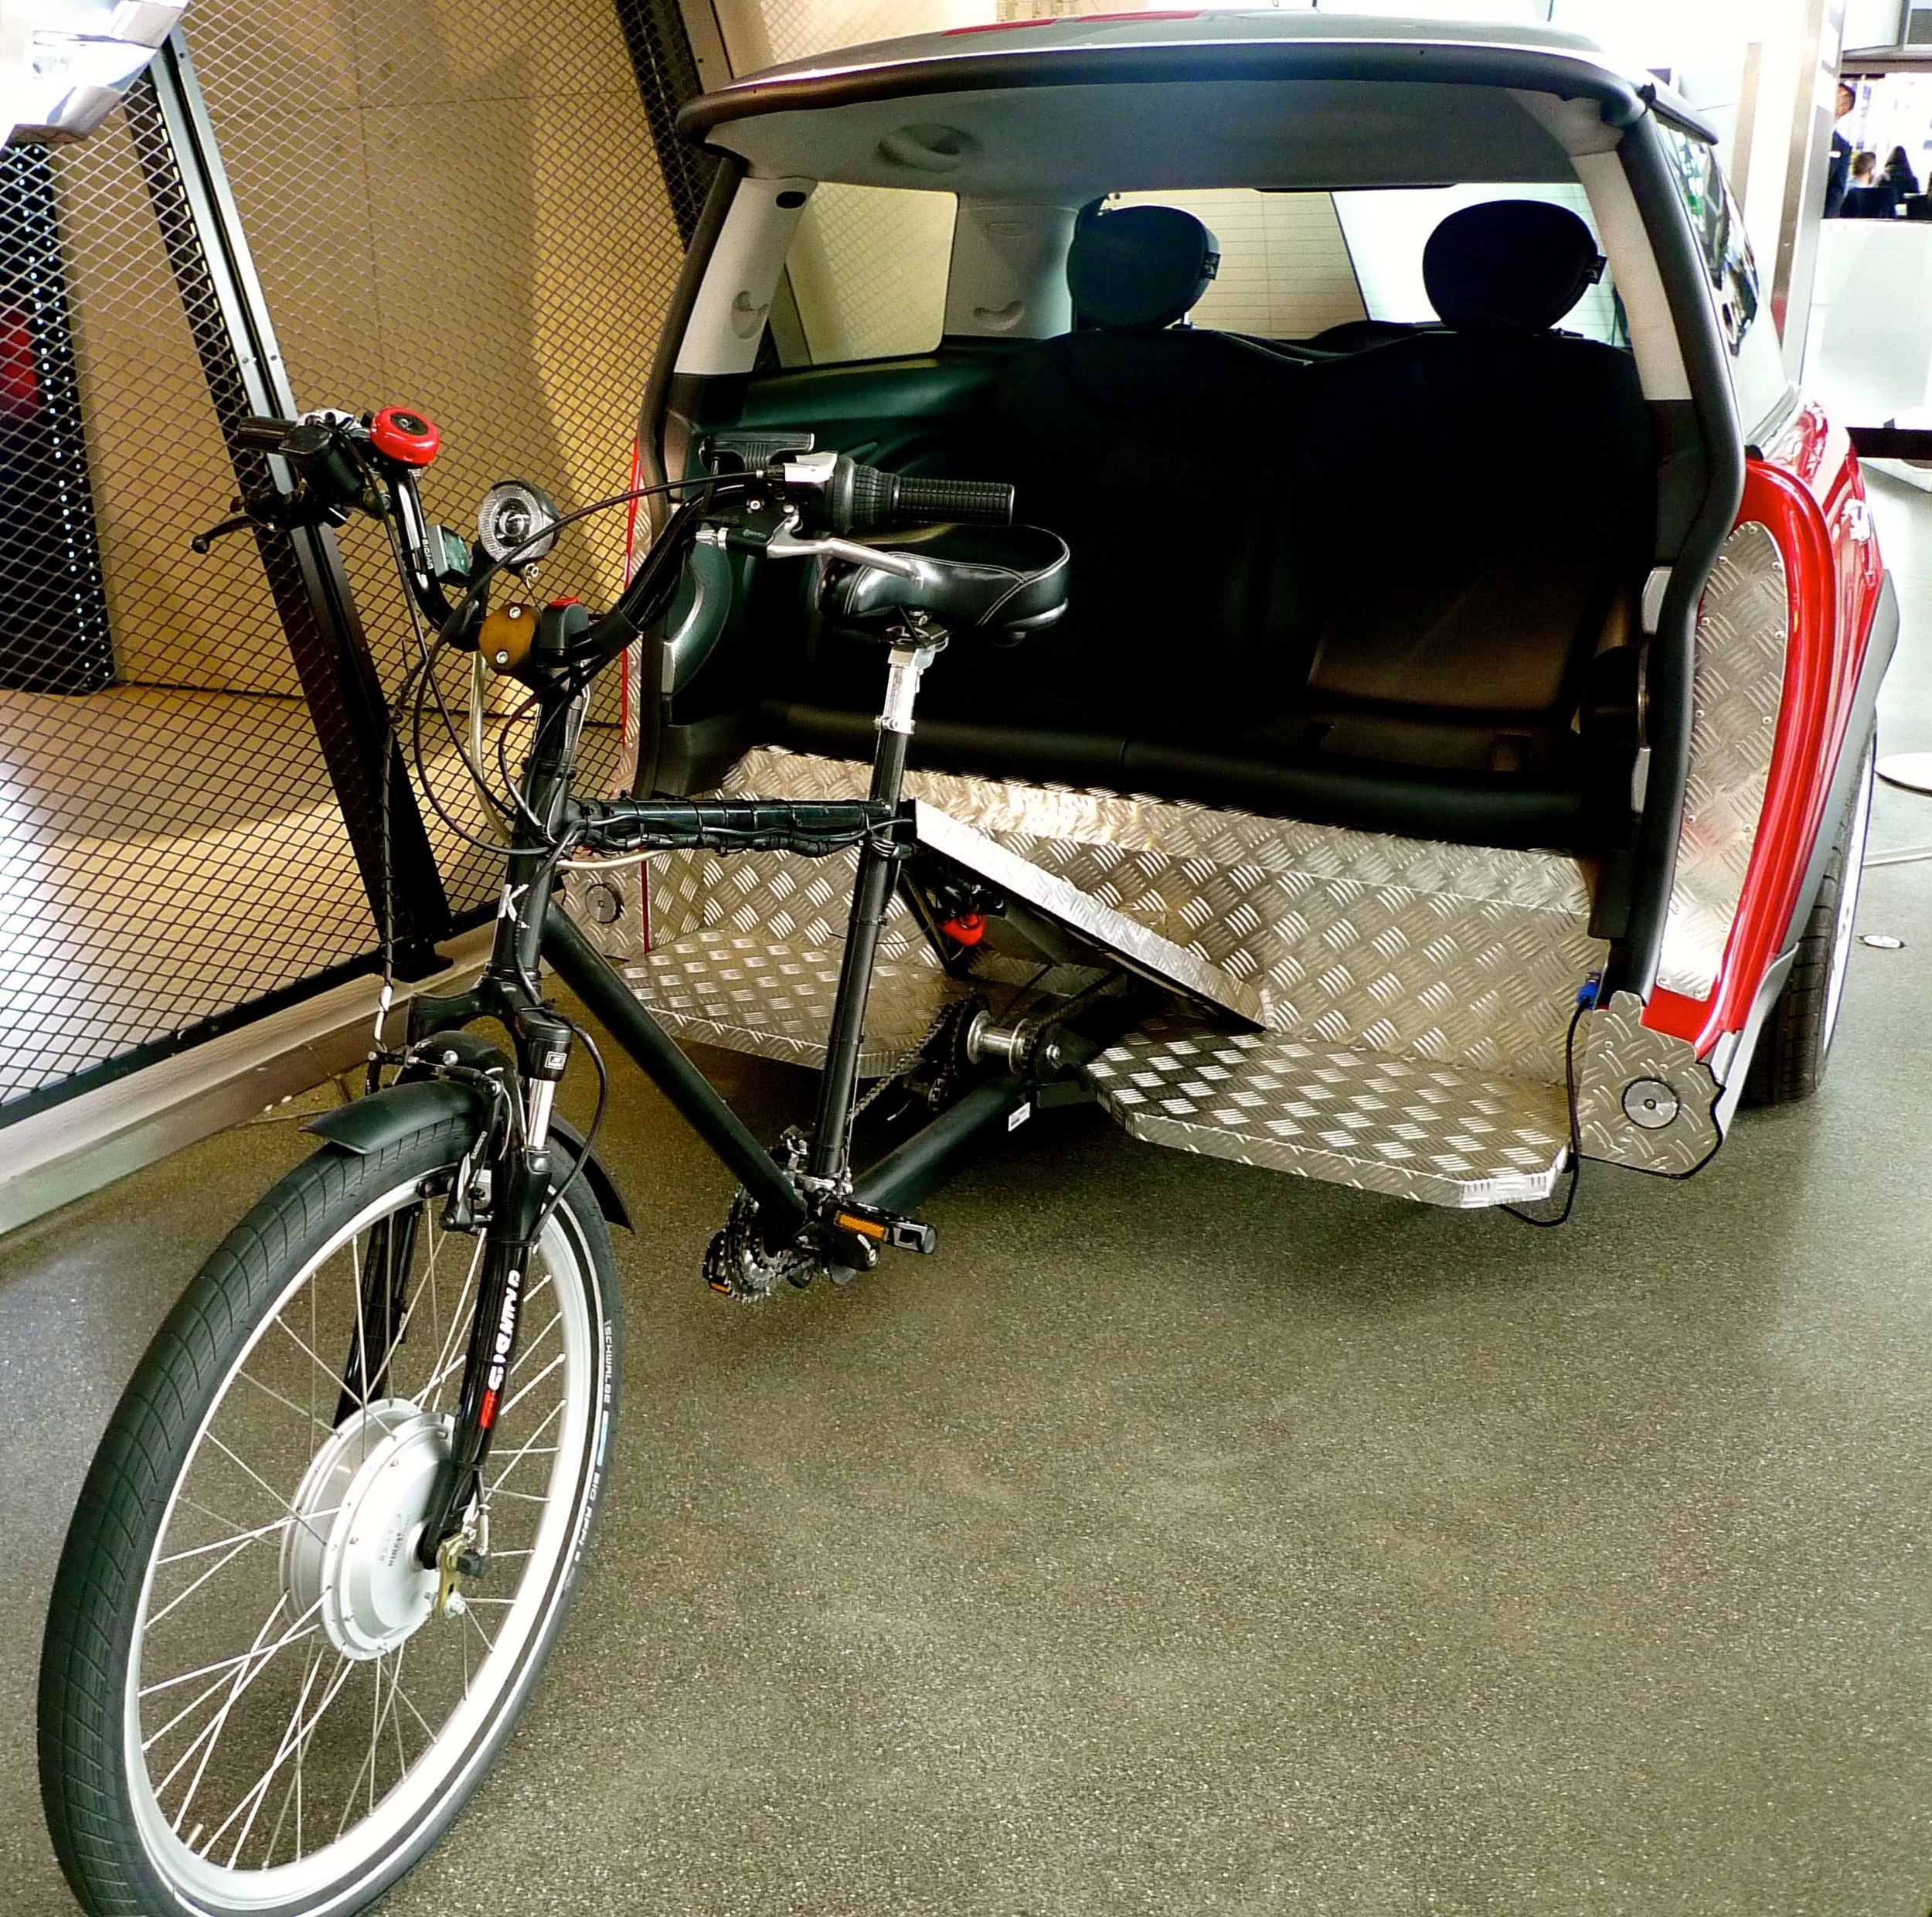 I'M STILL TRYING TO CONVINCE MOH THIS IS THE WAY FORWARD... A BIKE-POWERED MINI!